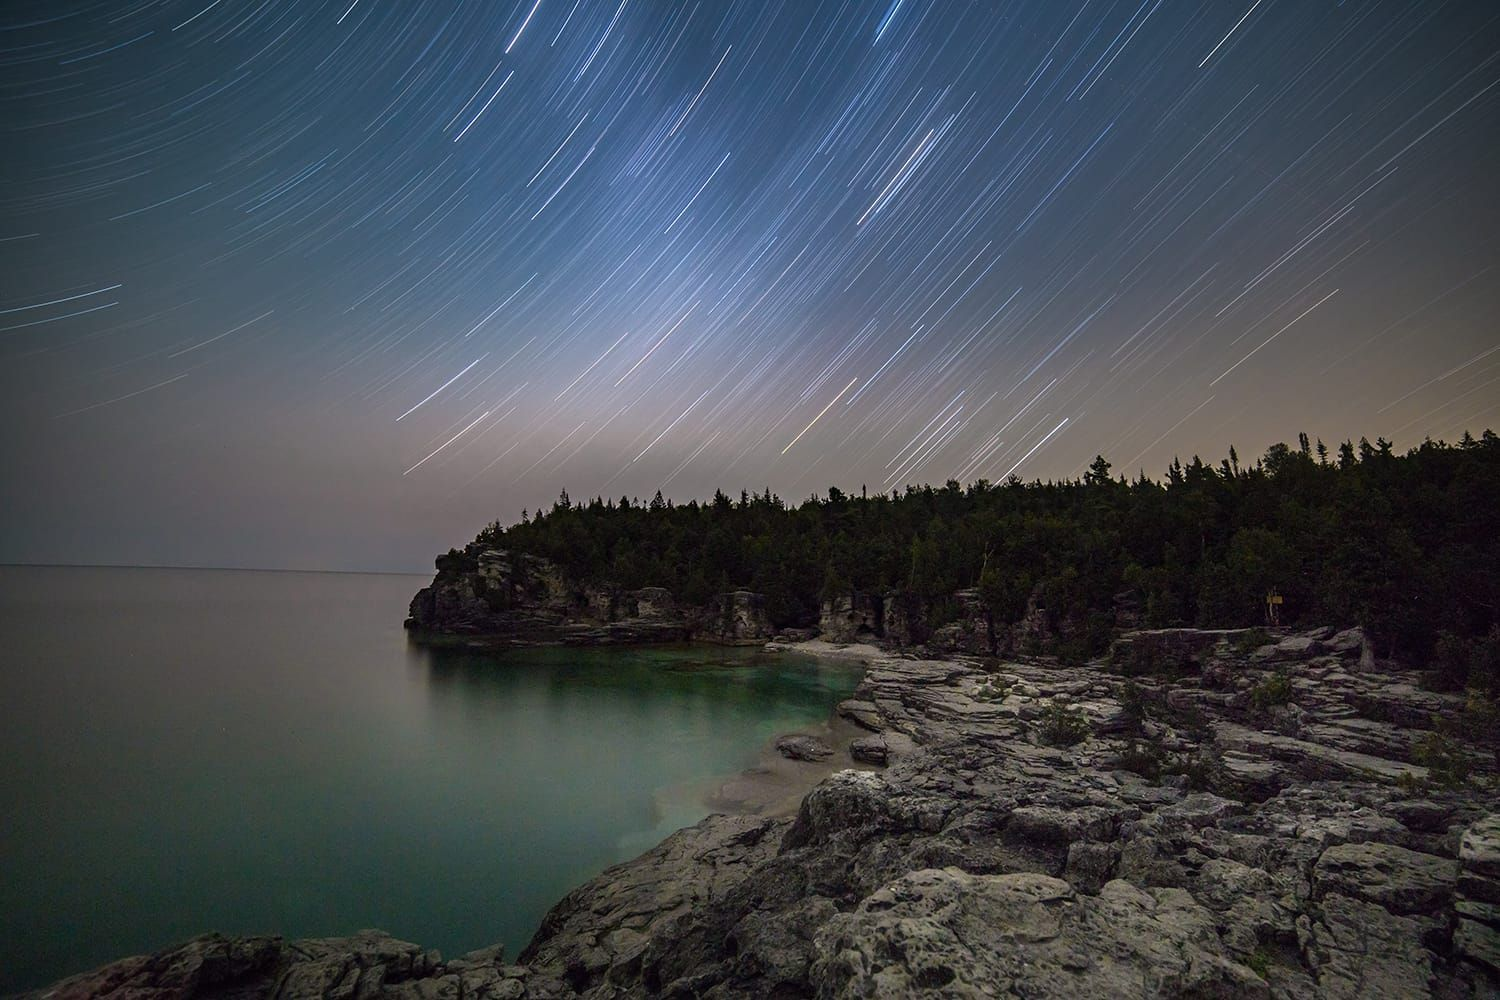 How to Shoot Spectacular Star Trail Photographs | Contrastly#contrastly #photographs #shoot #spectacular #star #trail